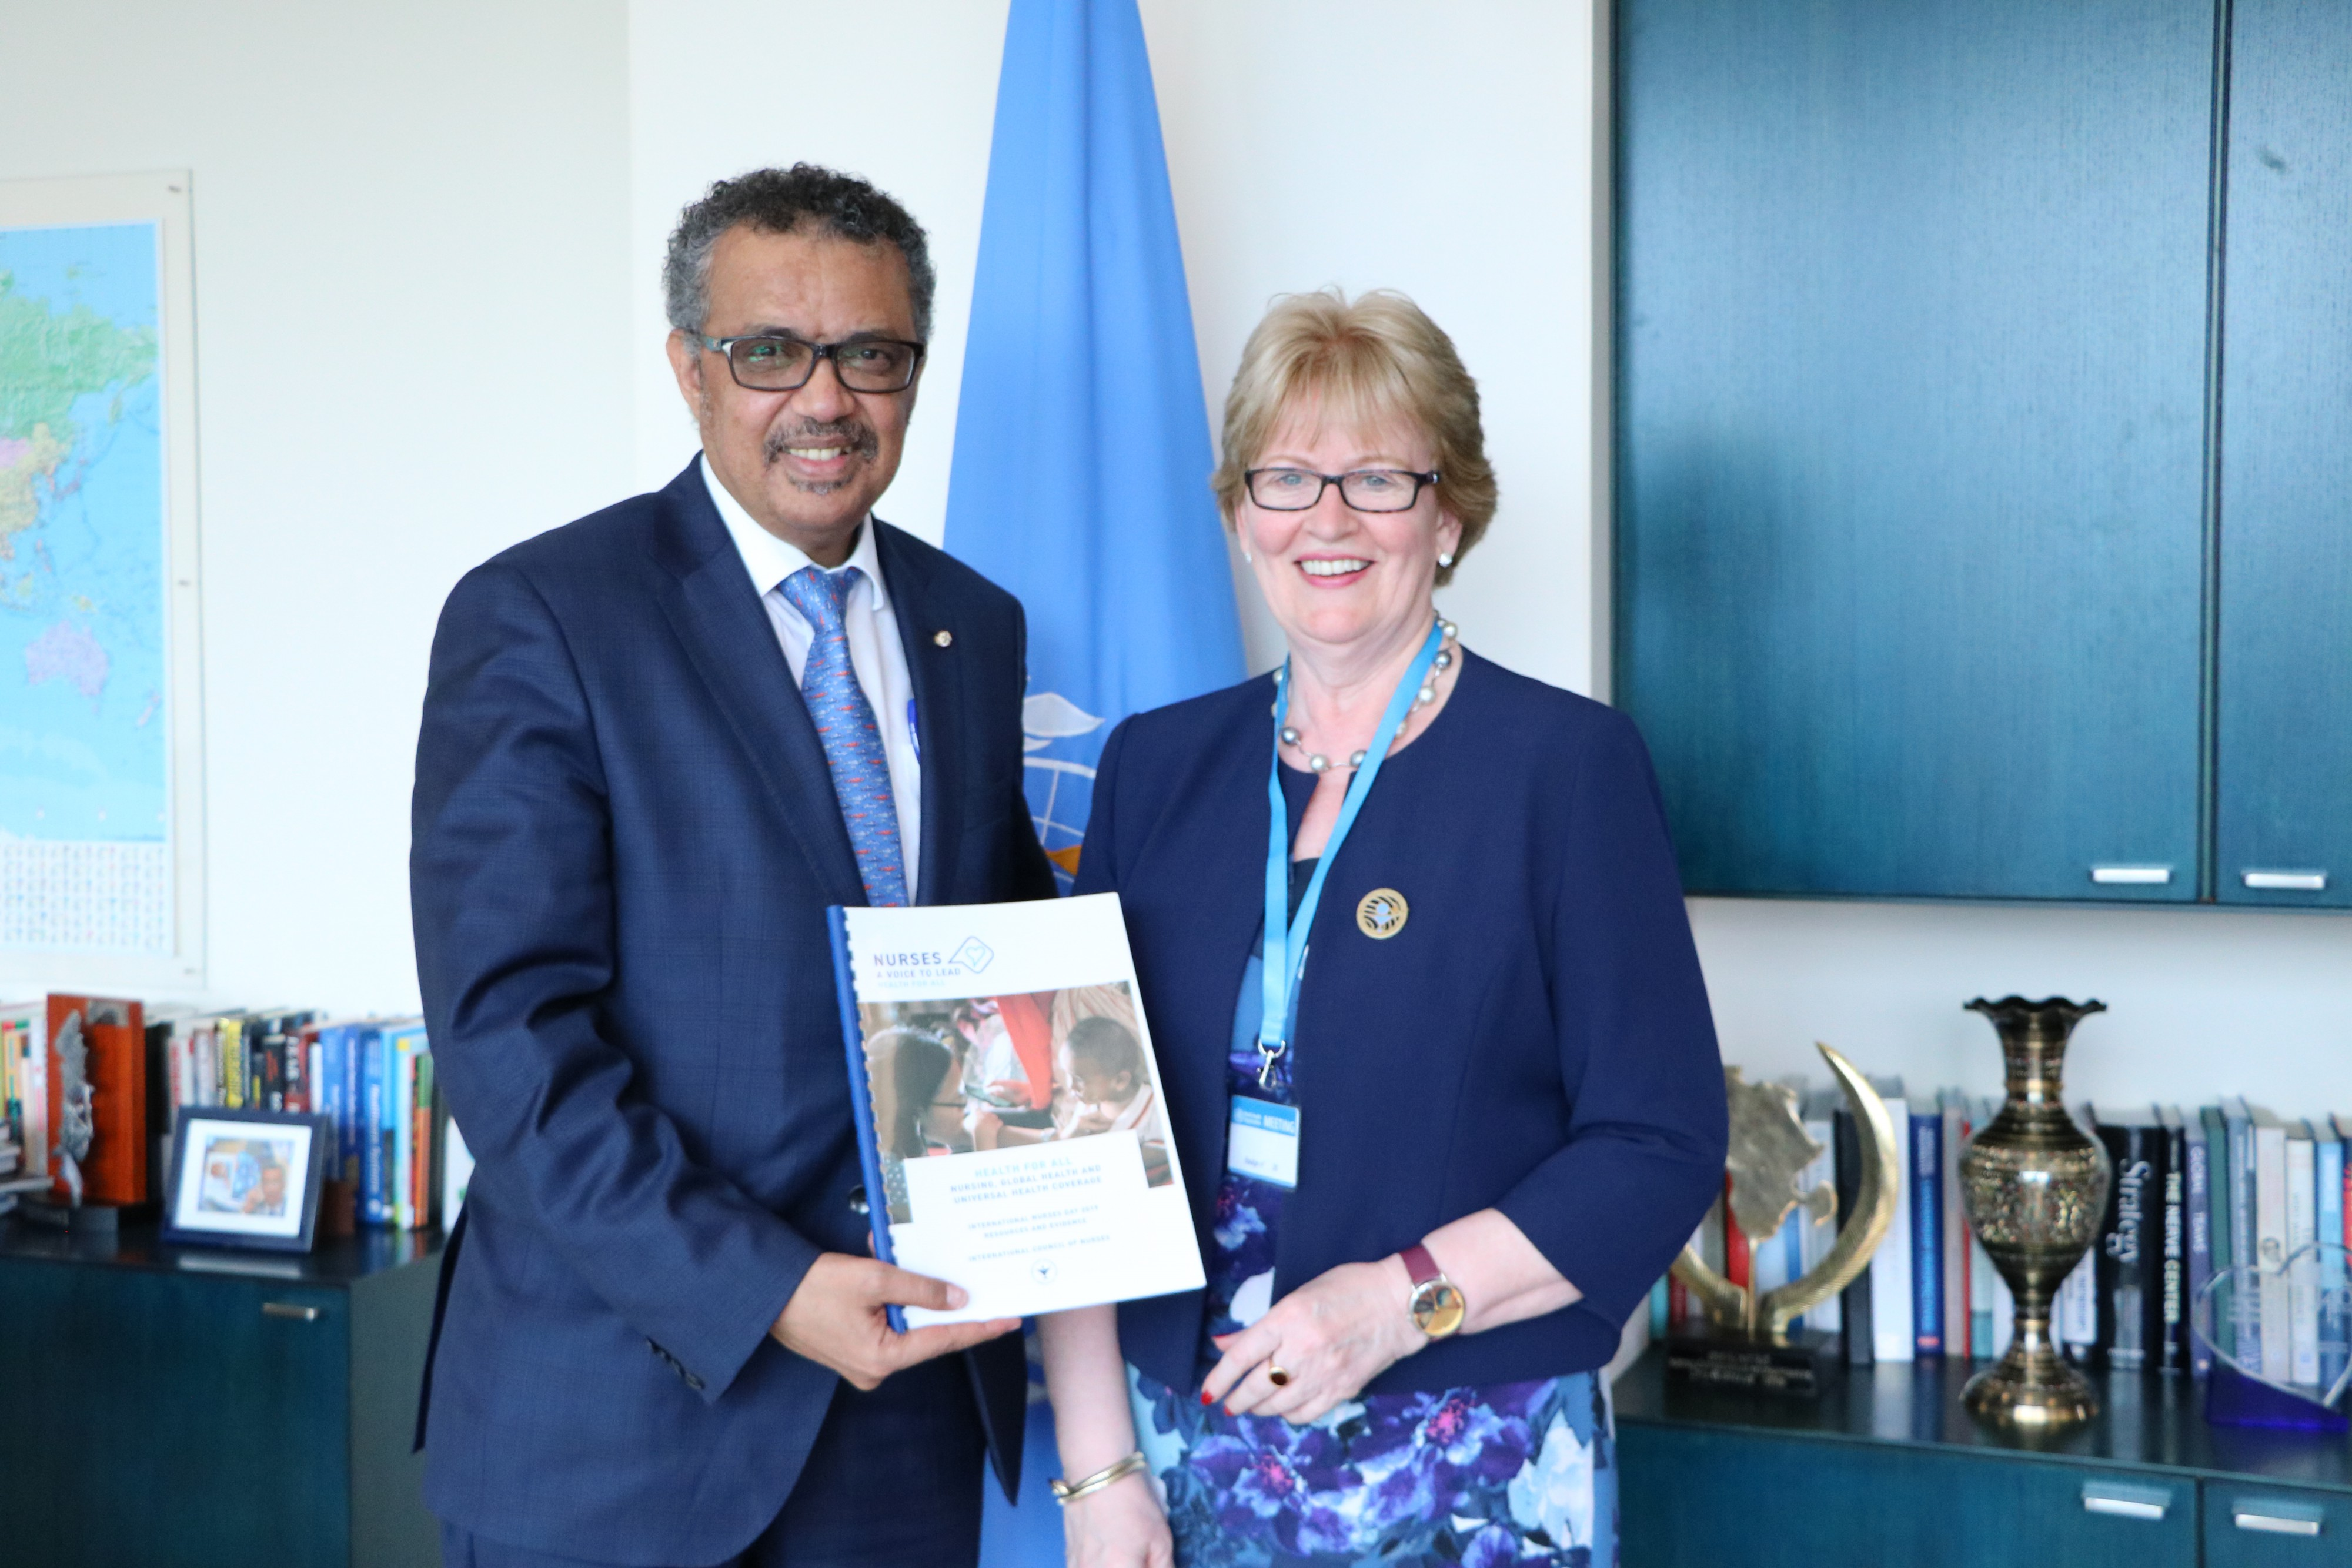 ICN President Annette Kennedy and WHO Director General Tedros Adhanom Ghebreyesus